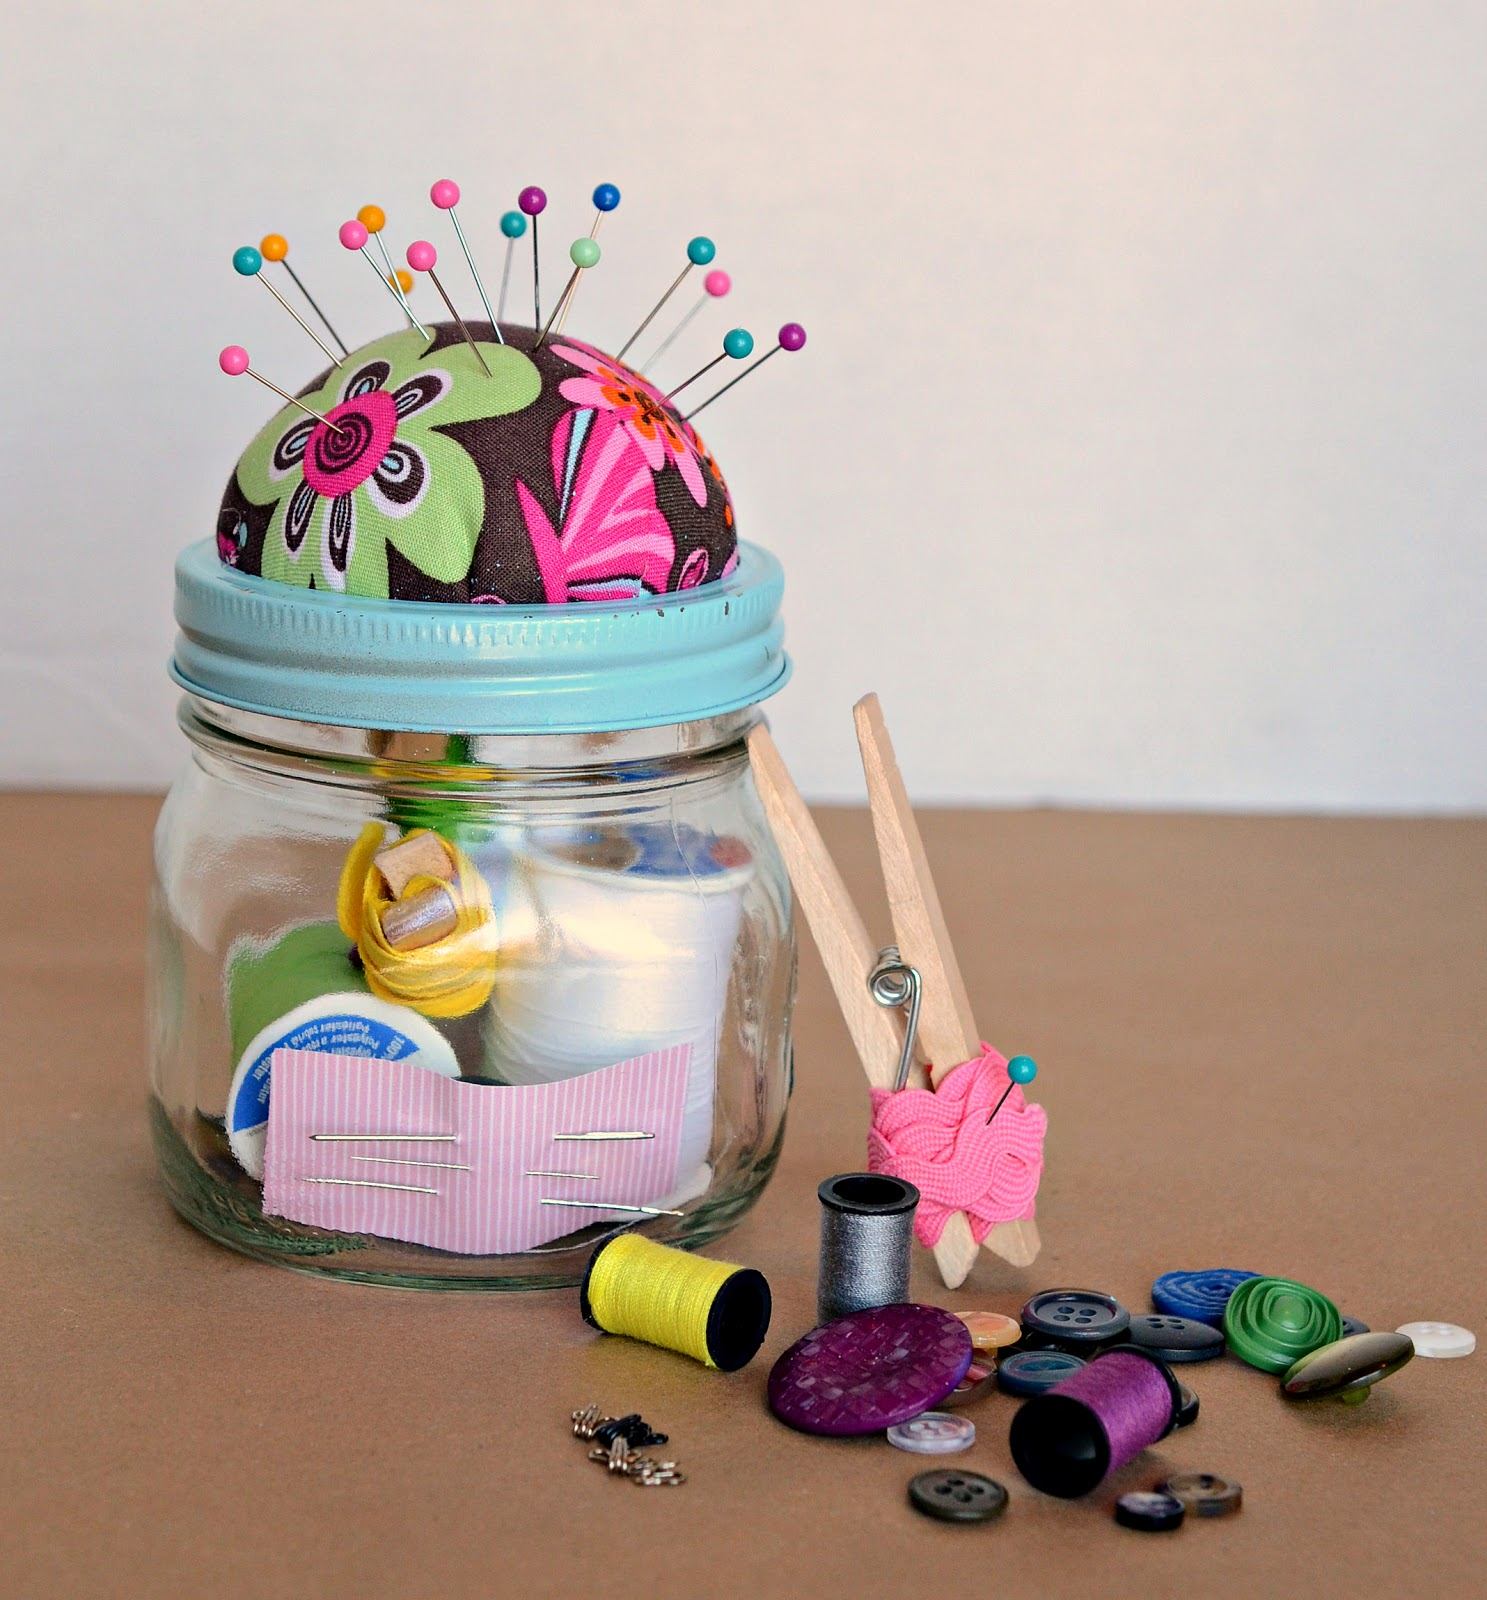 Homemade Gift Ideas: DIY Sewing Kit Gift In A Jar